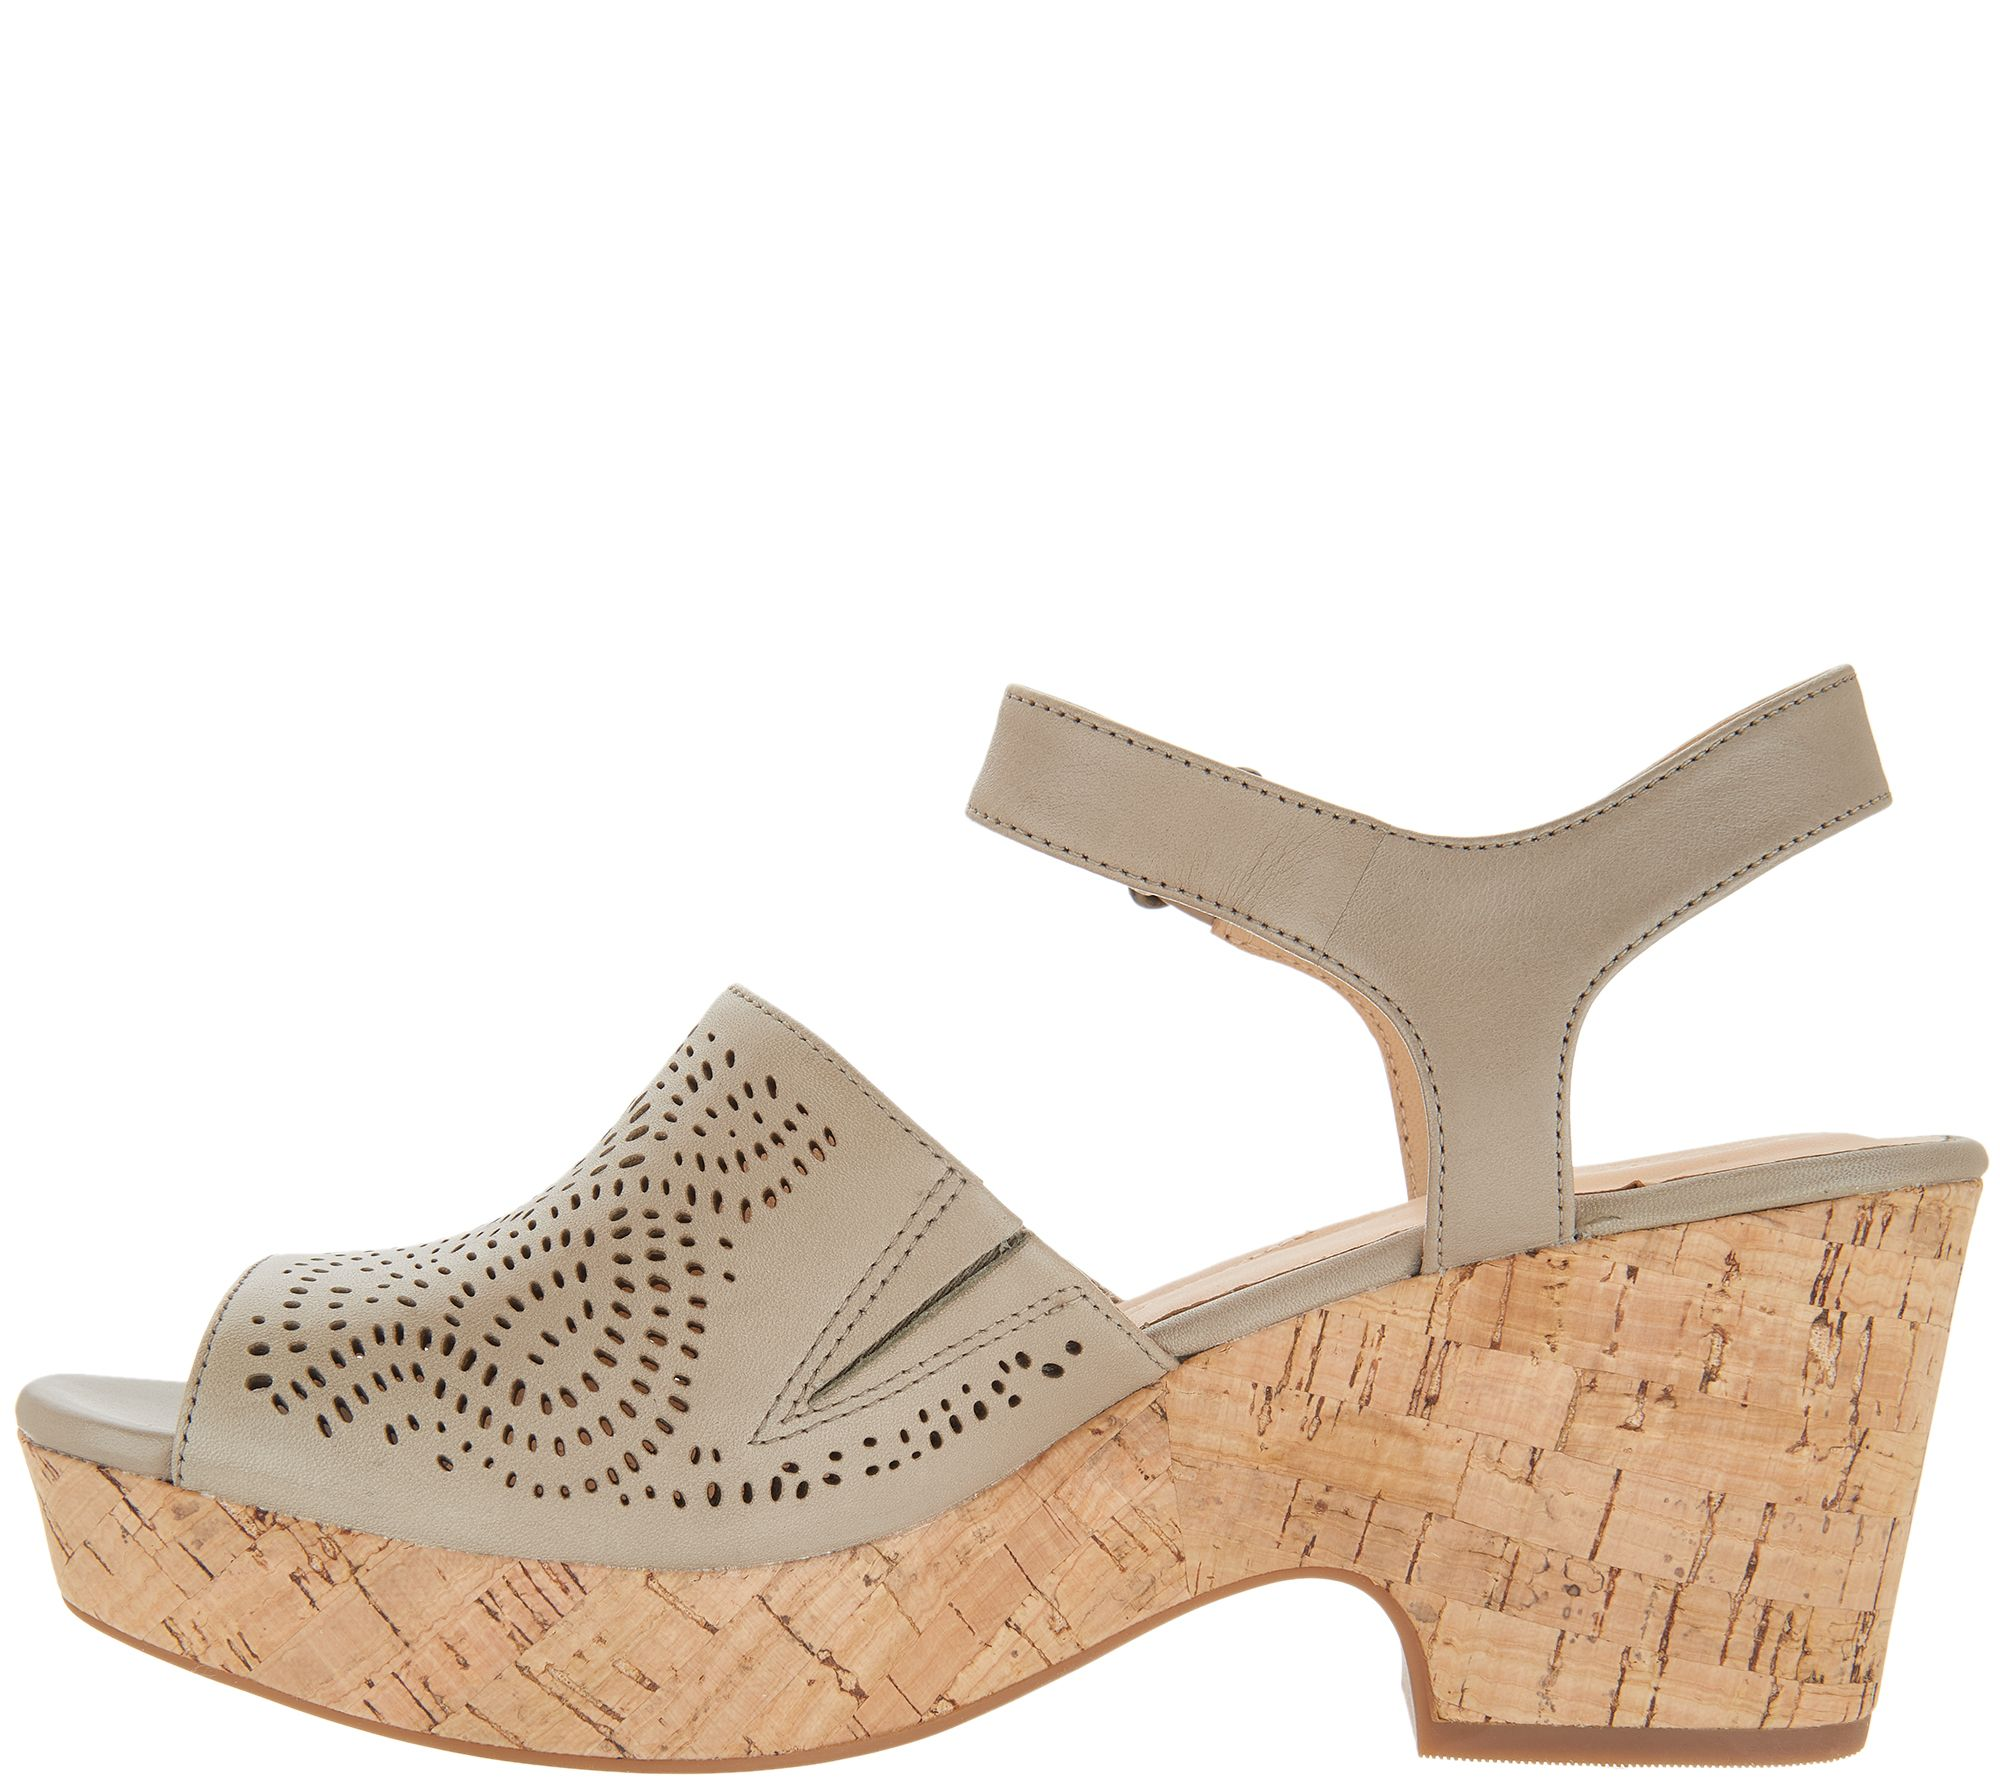 6ab748a02408 Clarks Artisan Perforated Leather Wedge Sandals - Maritsa Nila - Page 1 —  QVC.com